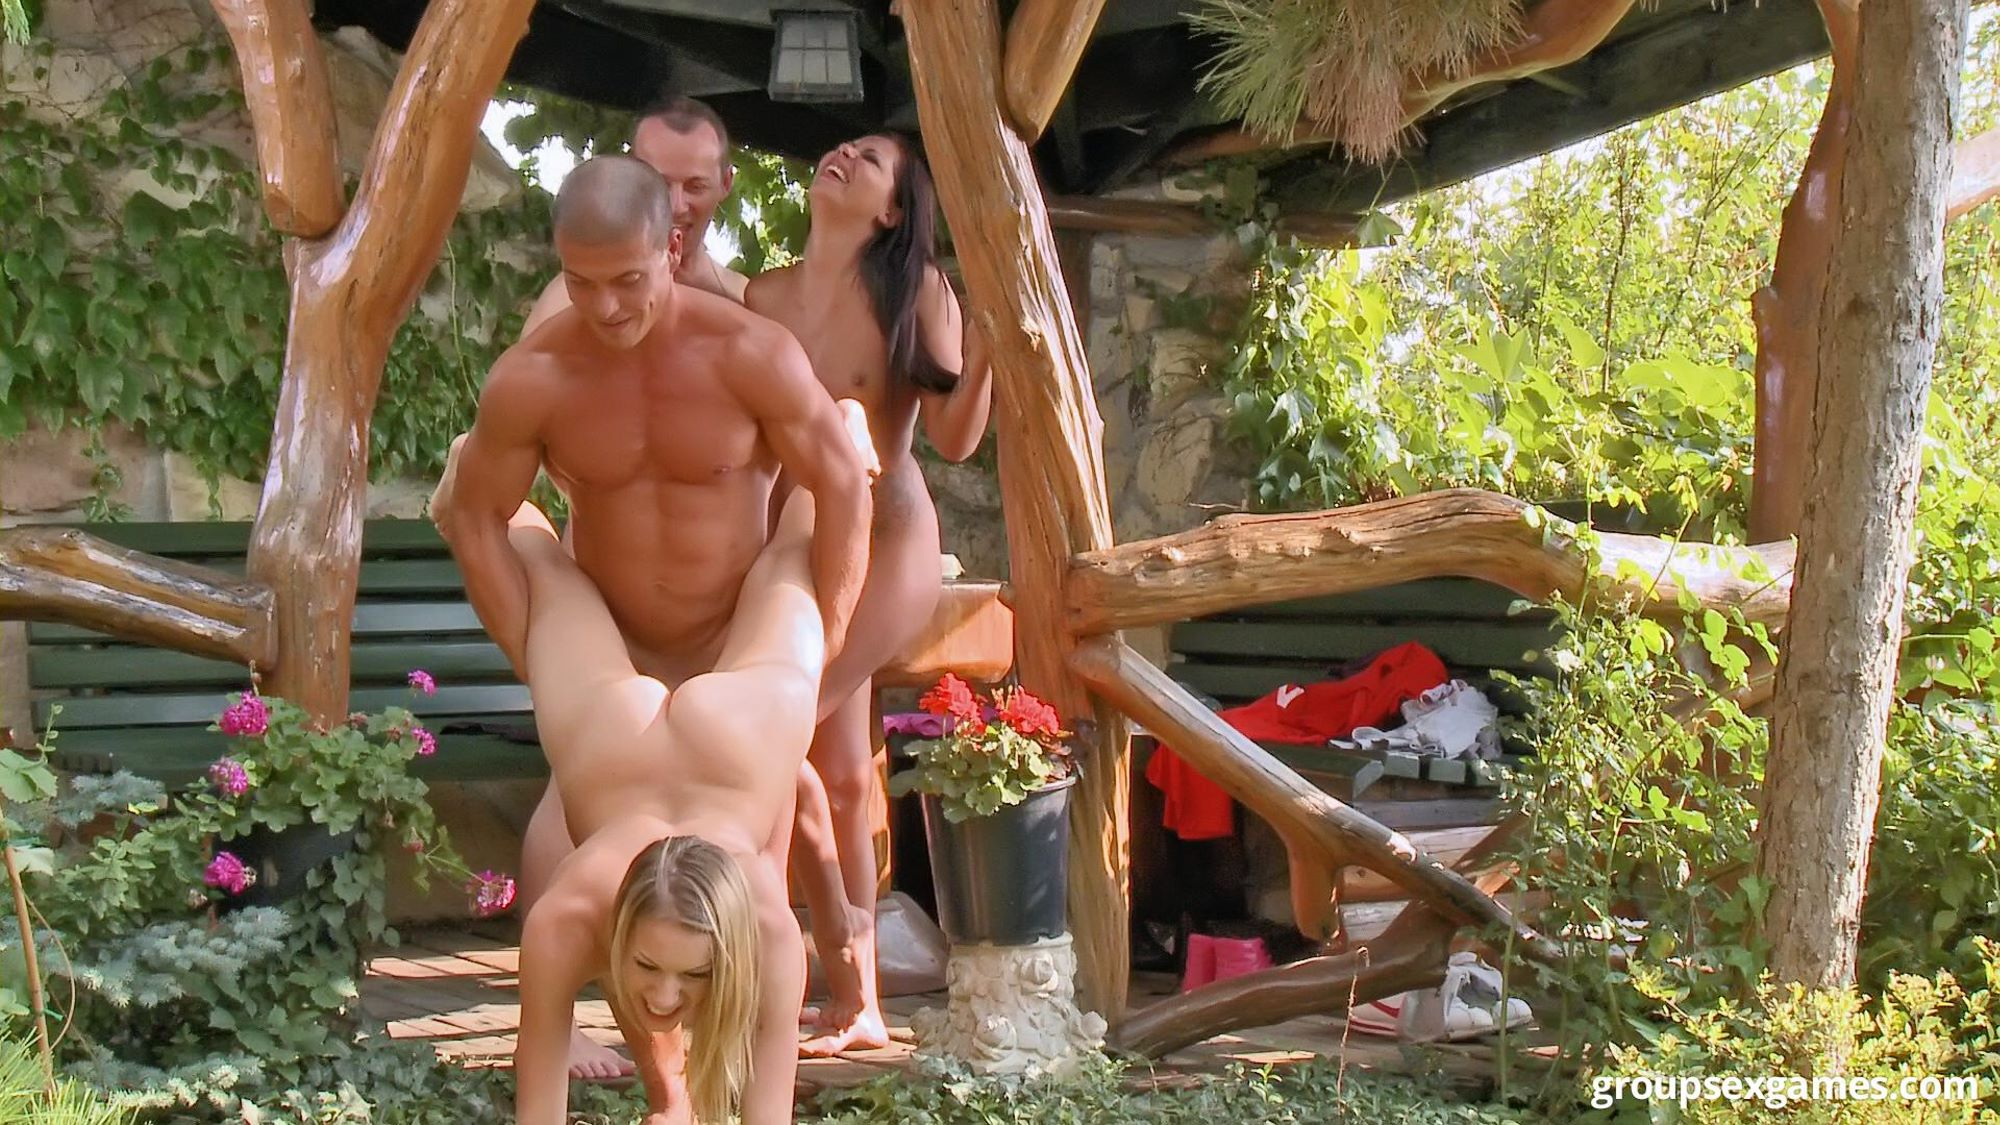 Outdoor Raw Group Sex - Free Porn Samples of Group Sex Games - Group Sex Games ...